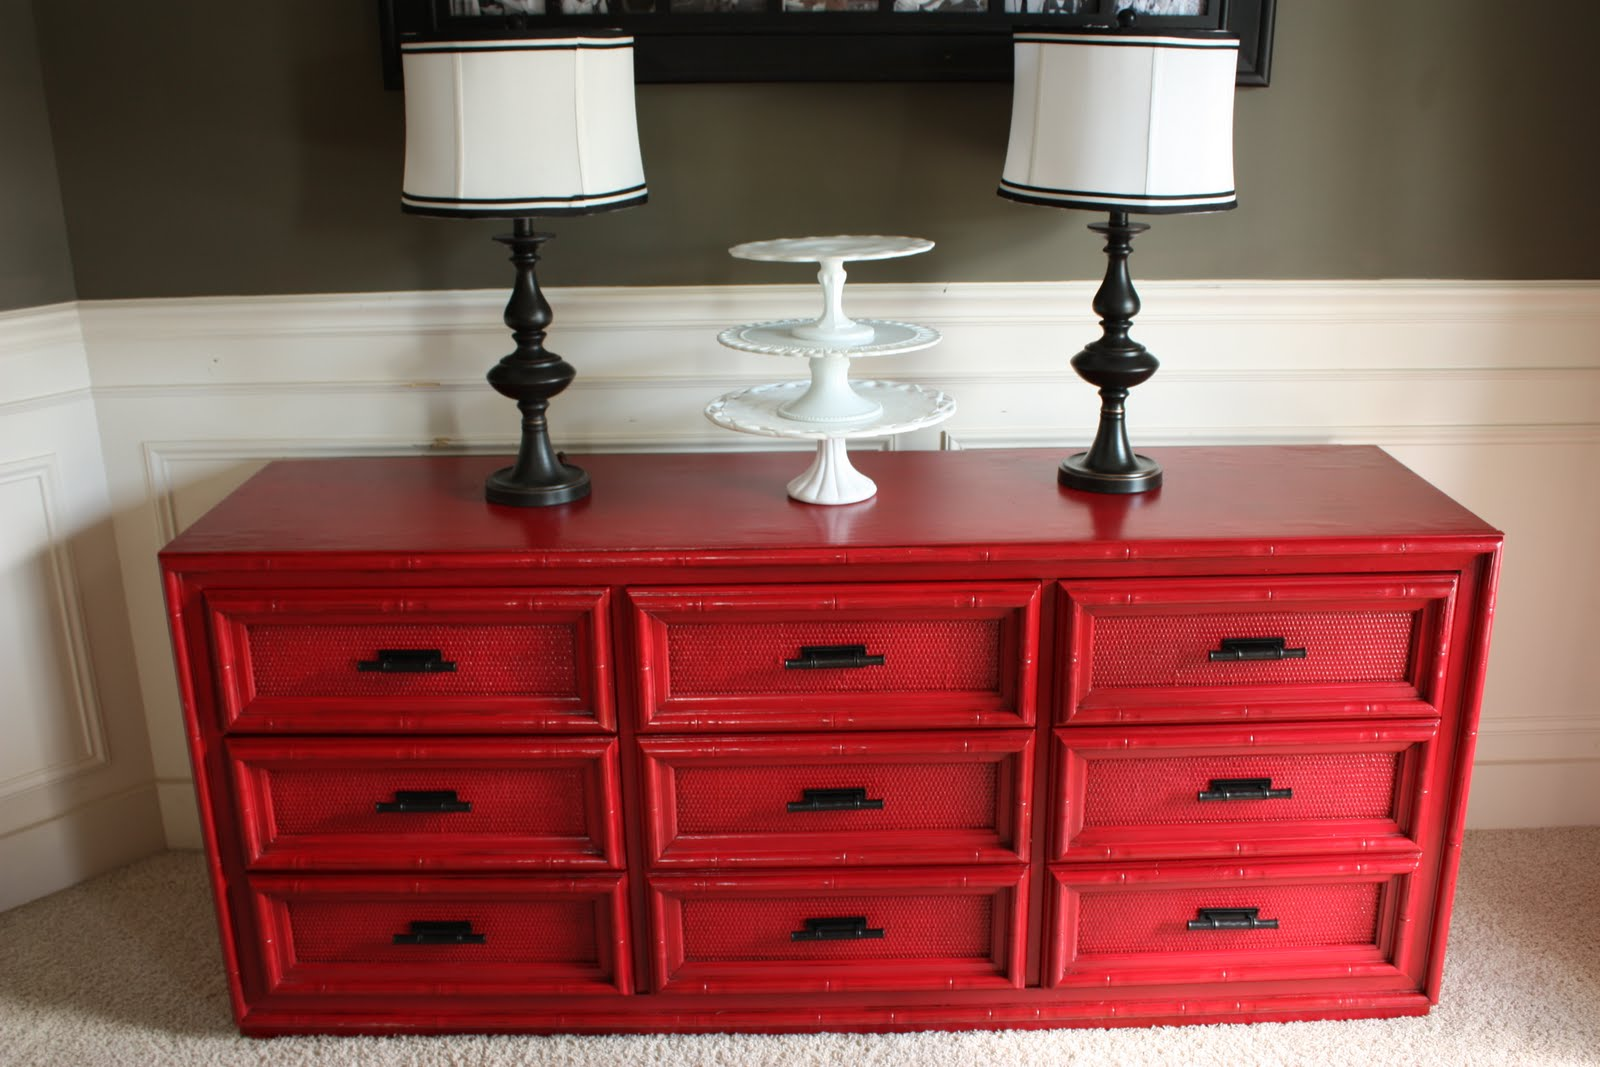 The Yellow Cape Cod The Red Dresser Part II